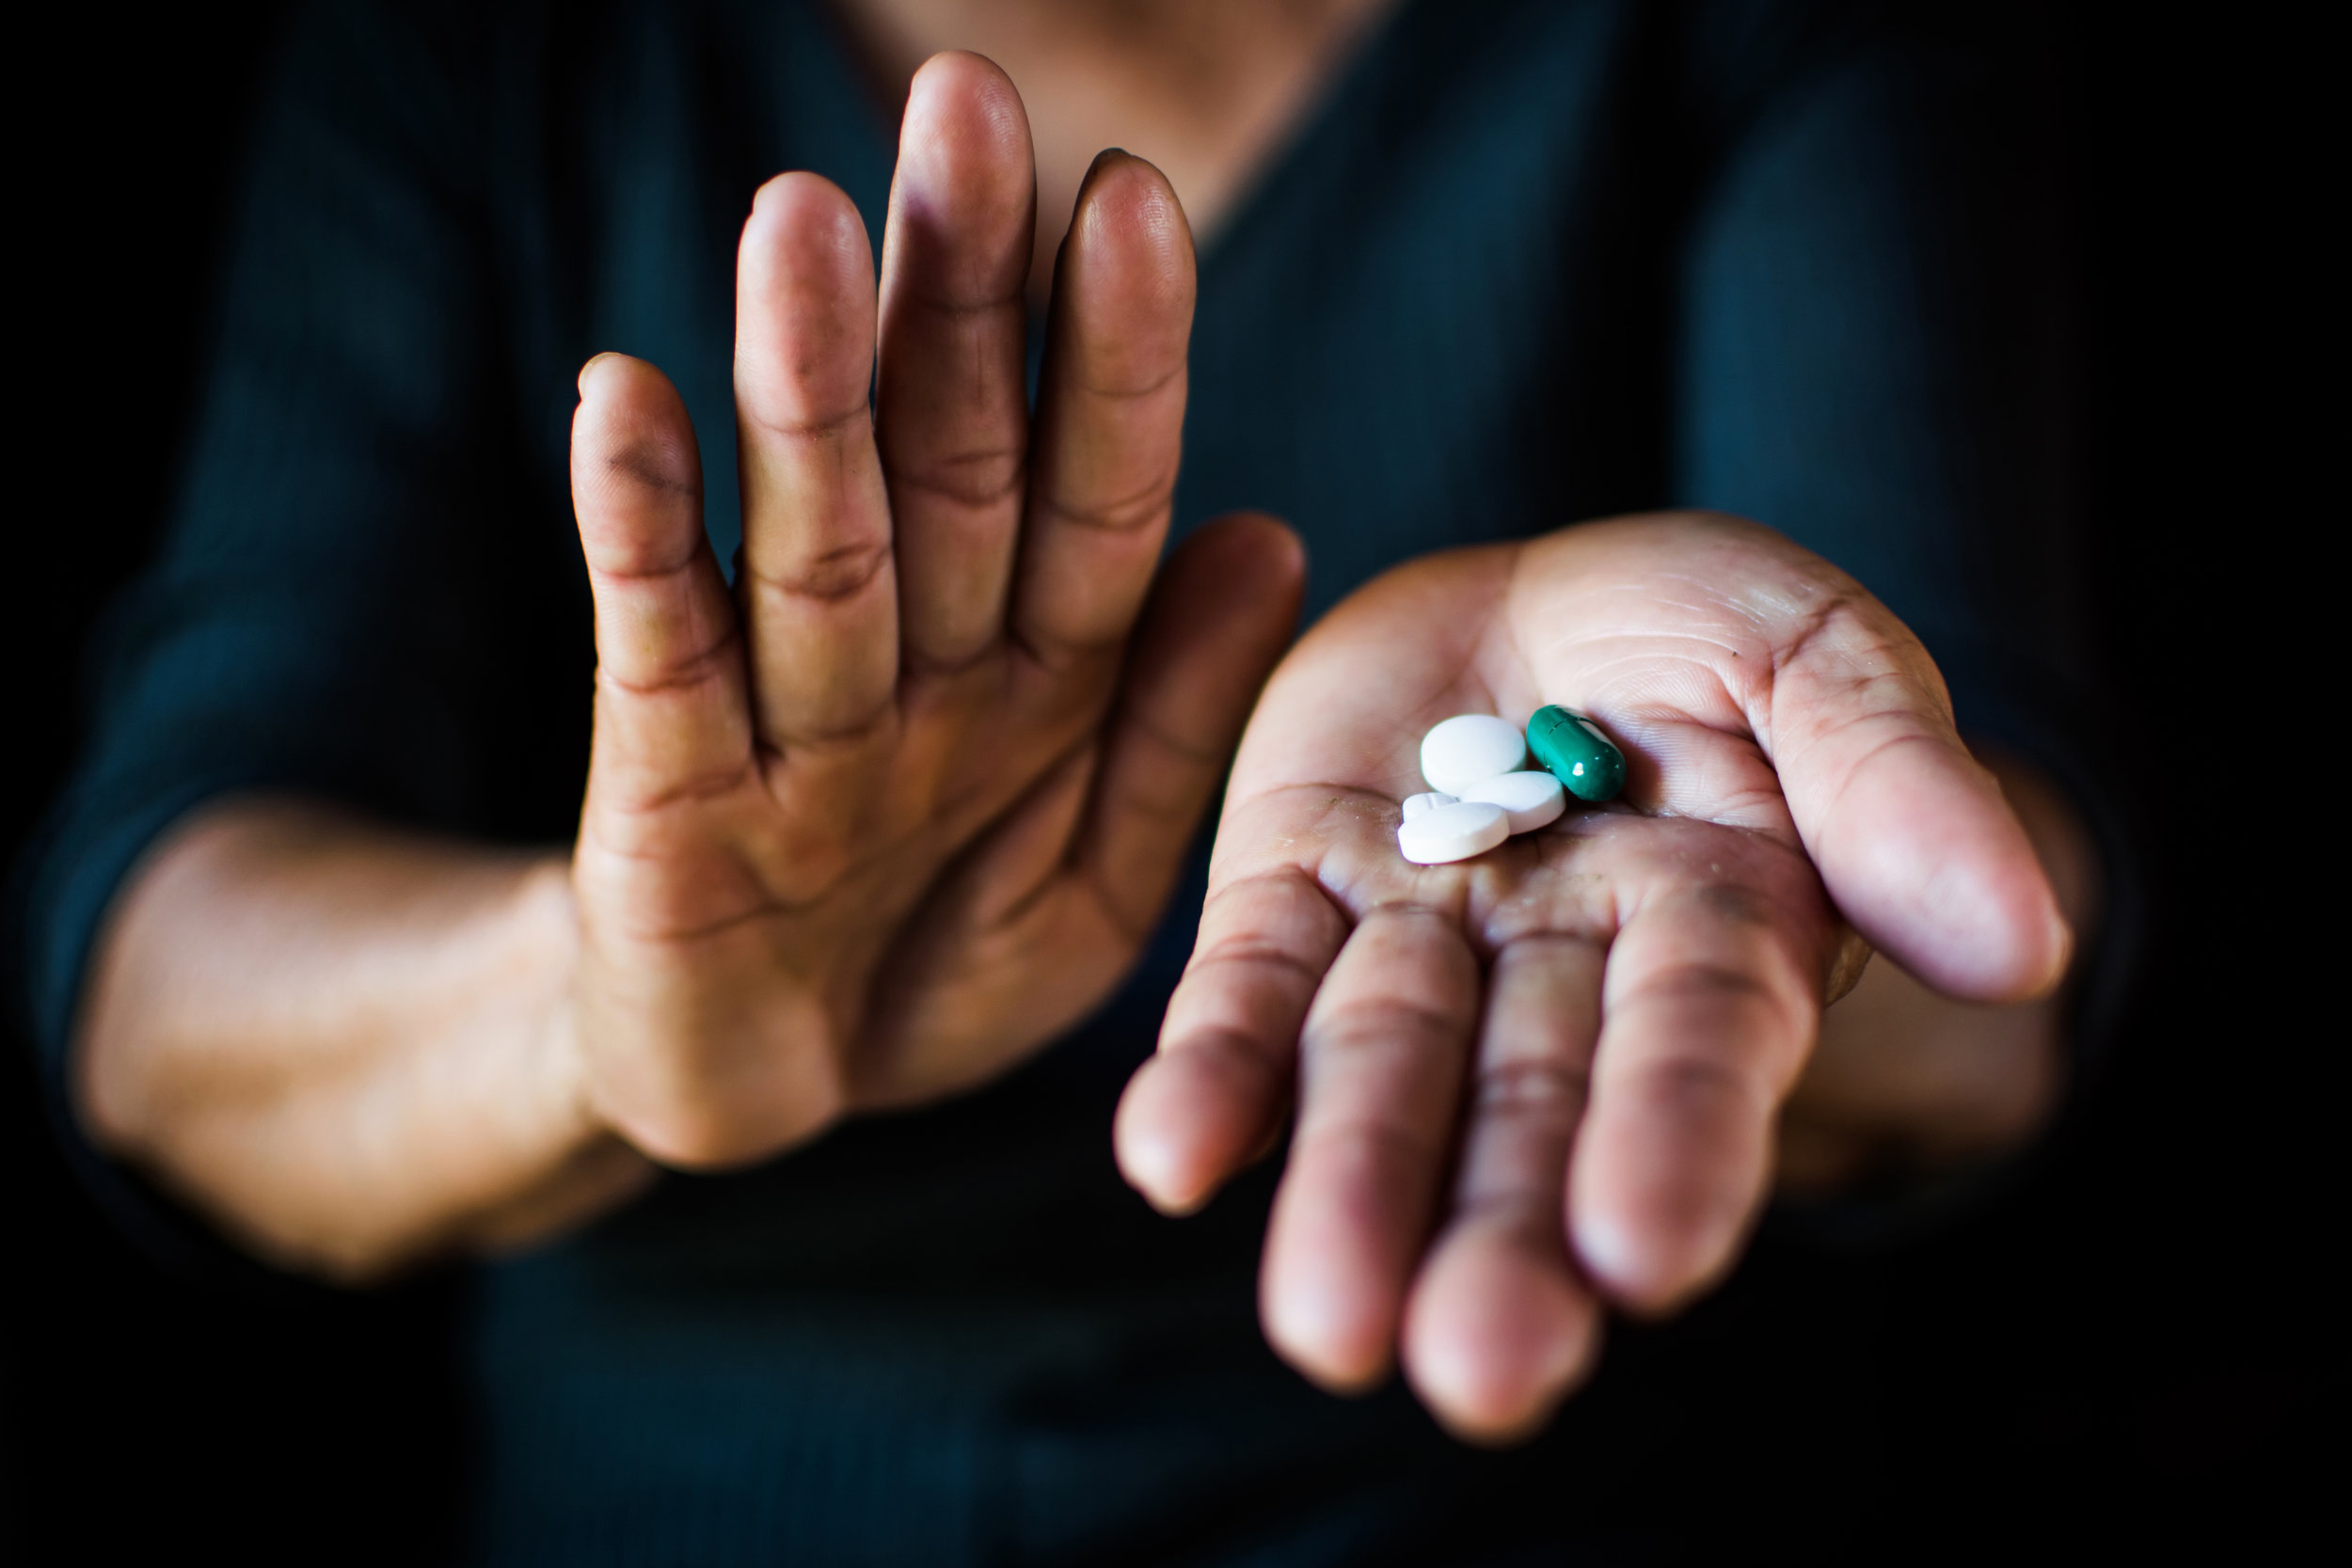 can medications be harmful? -